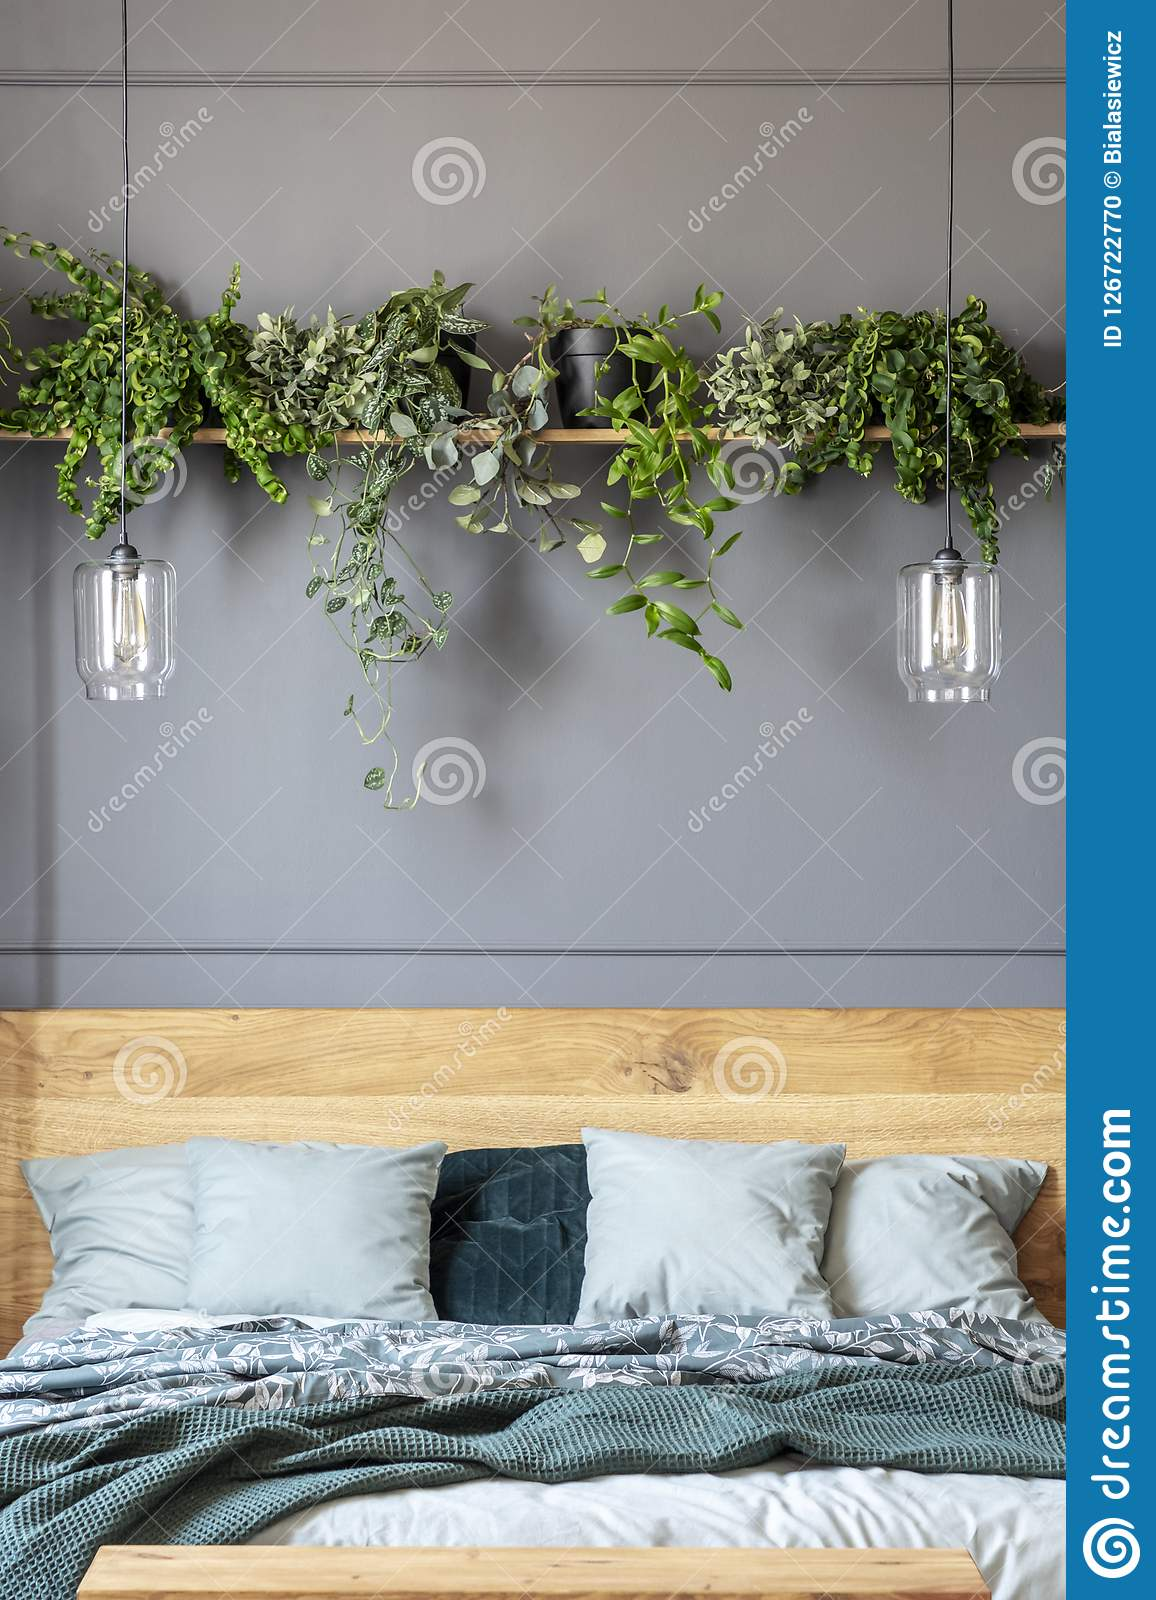 Lamps And Plants Above Wooden Bed With Green Blanket In Grey Bed Stock Photo Image Of Hotel Dark 126722770